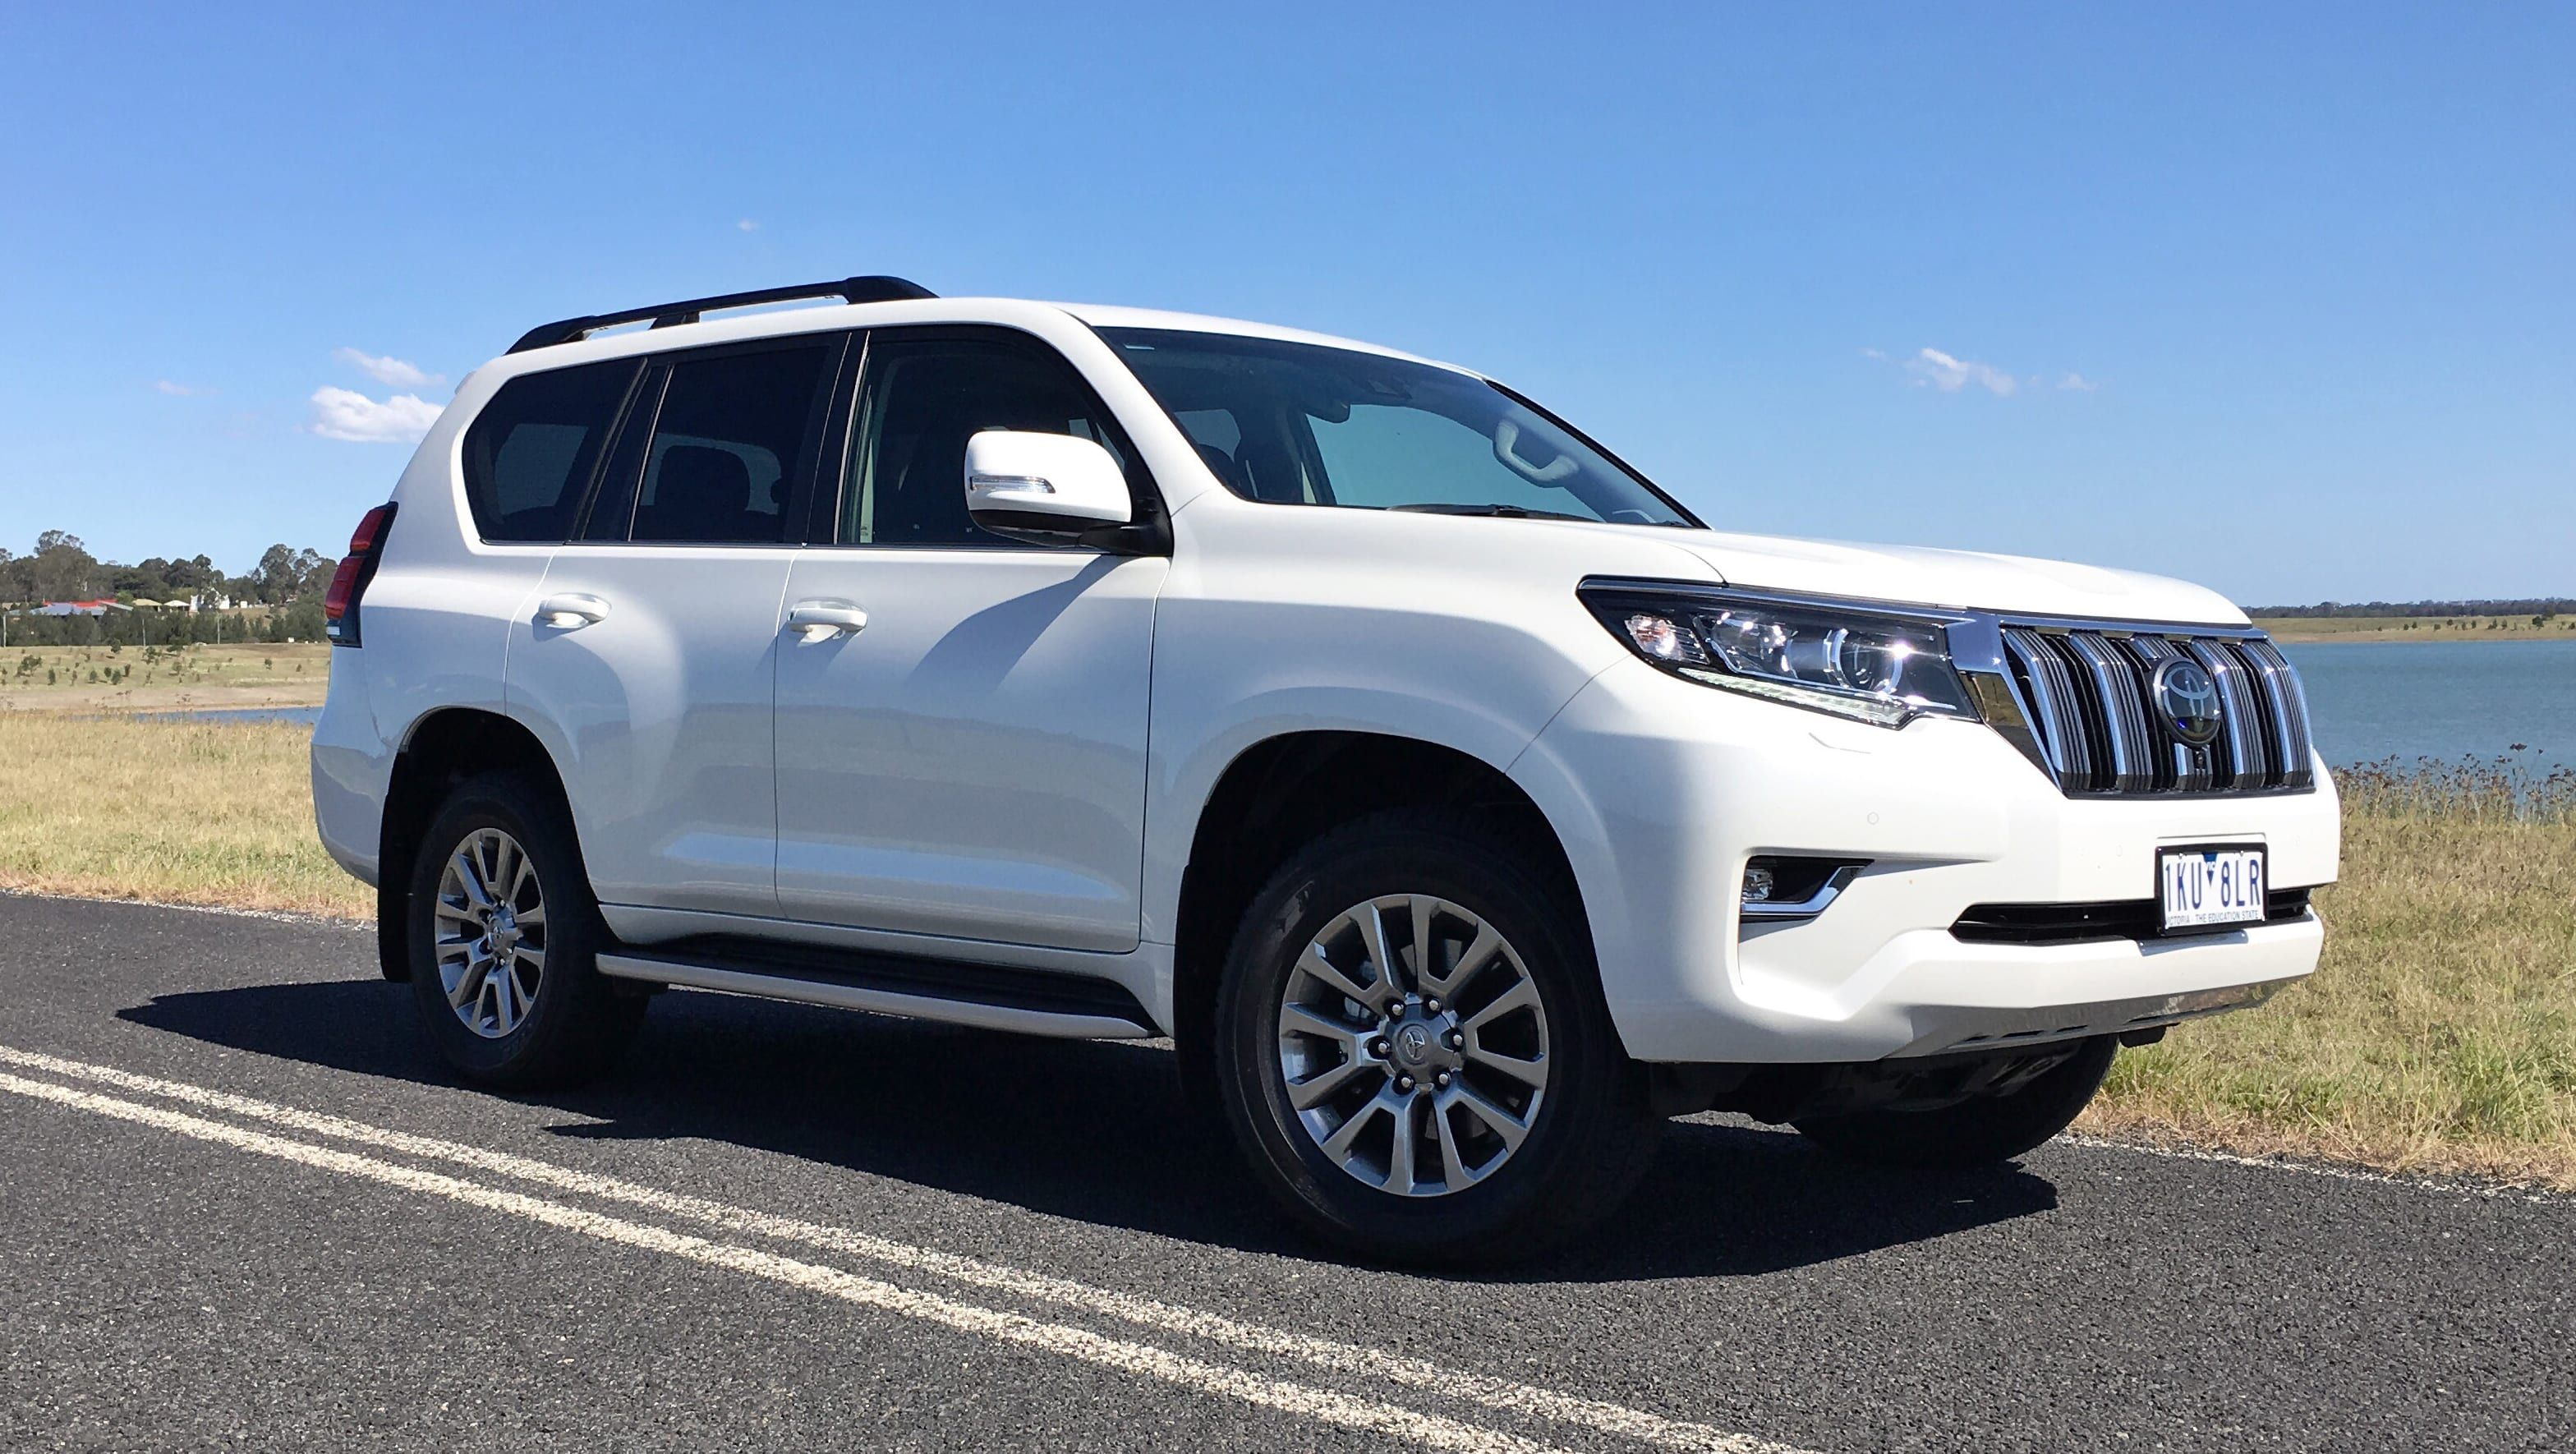 Whether You Need A Daily Commuter Or A Weekend Dirt Basher Toyota Landcruiser Prado Grande 4wd Is A With Images Toyota Land Cruiser Prado Toyota Land Cruiser Land Cruiser